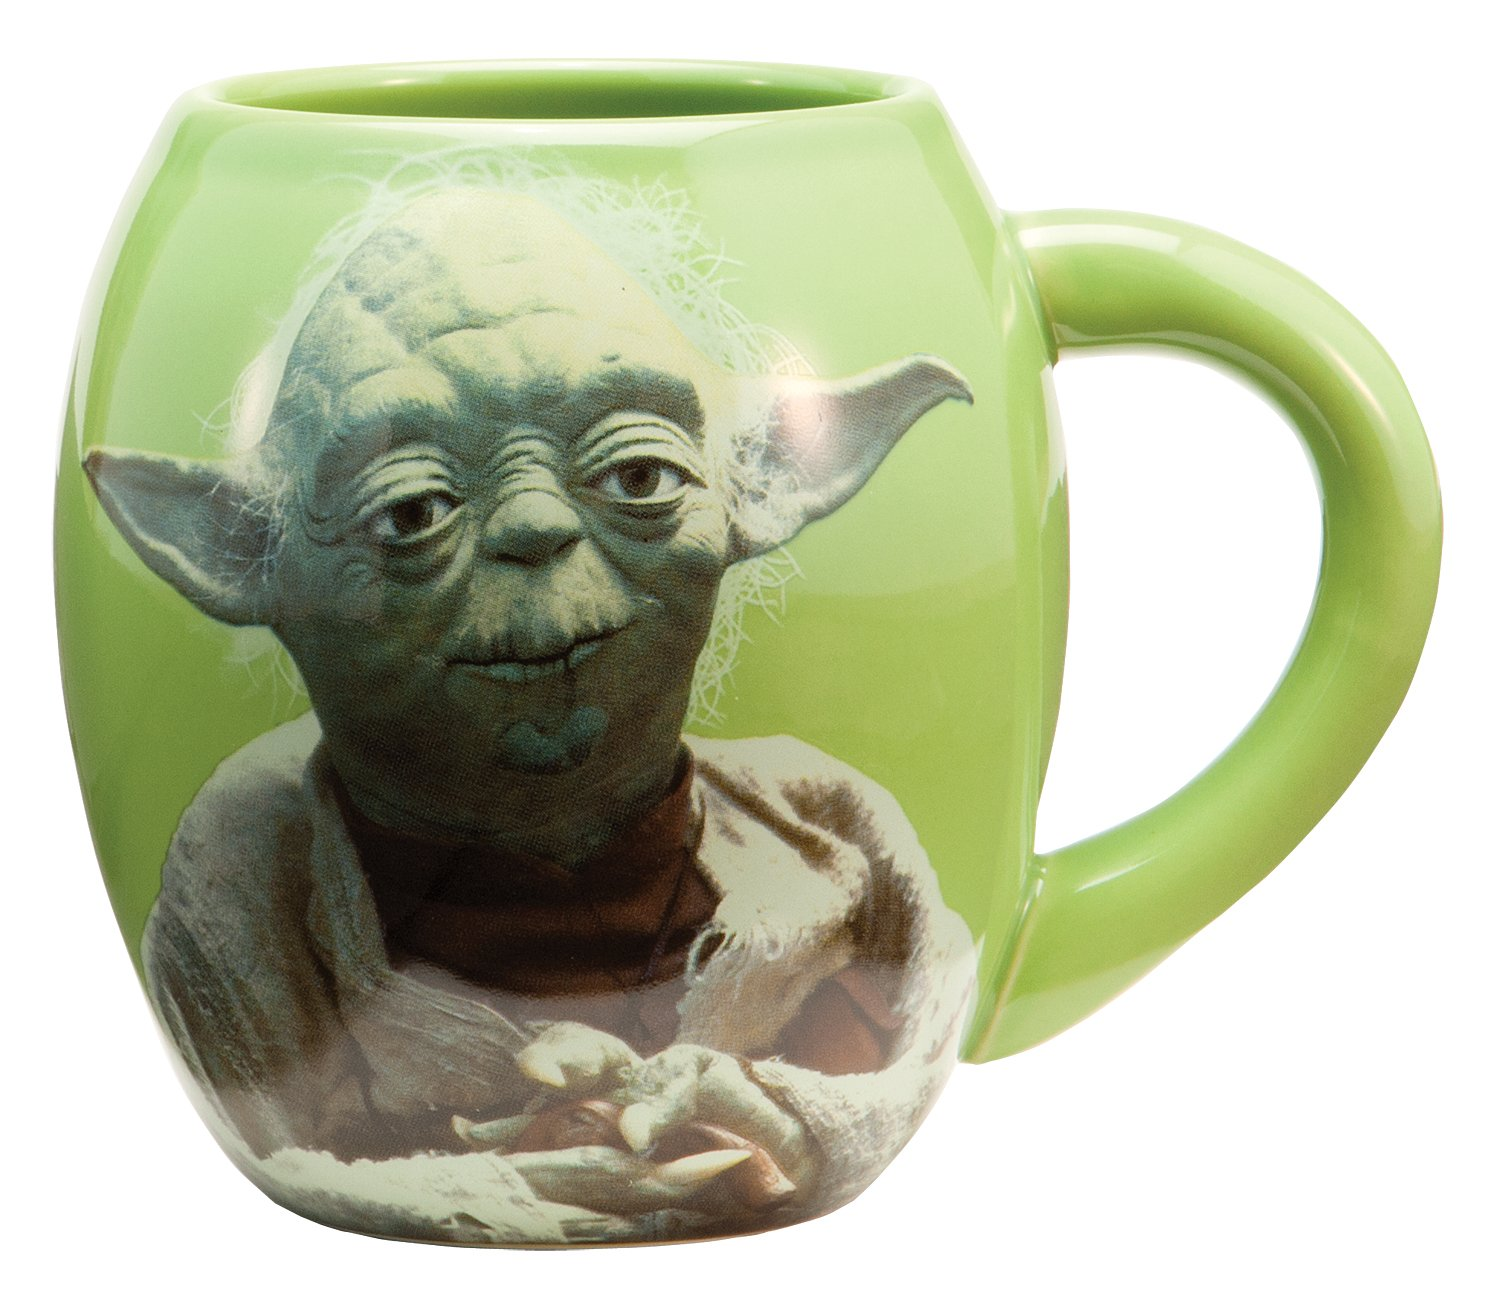 Star Wars Oval Ceramic Mug Image